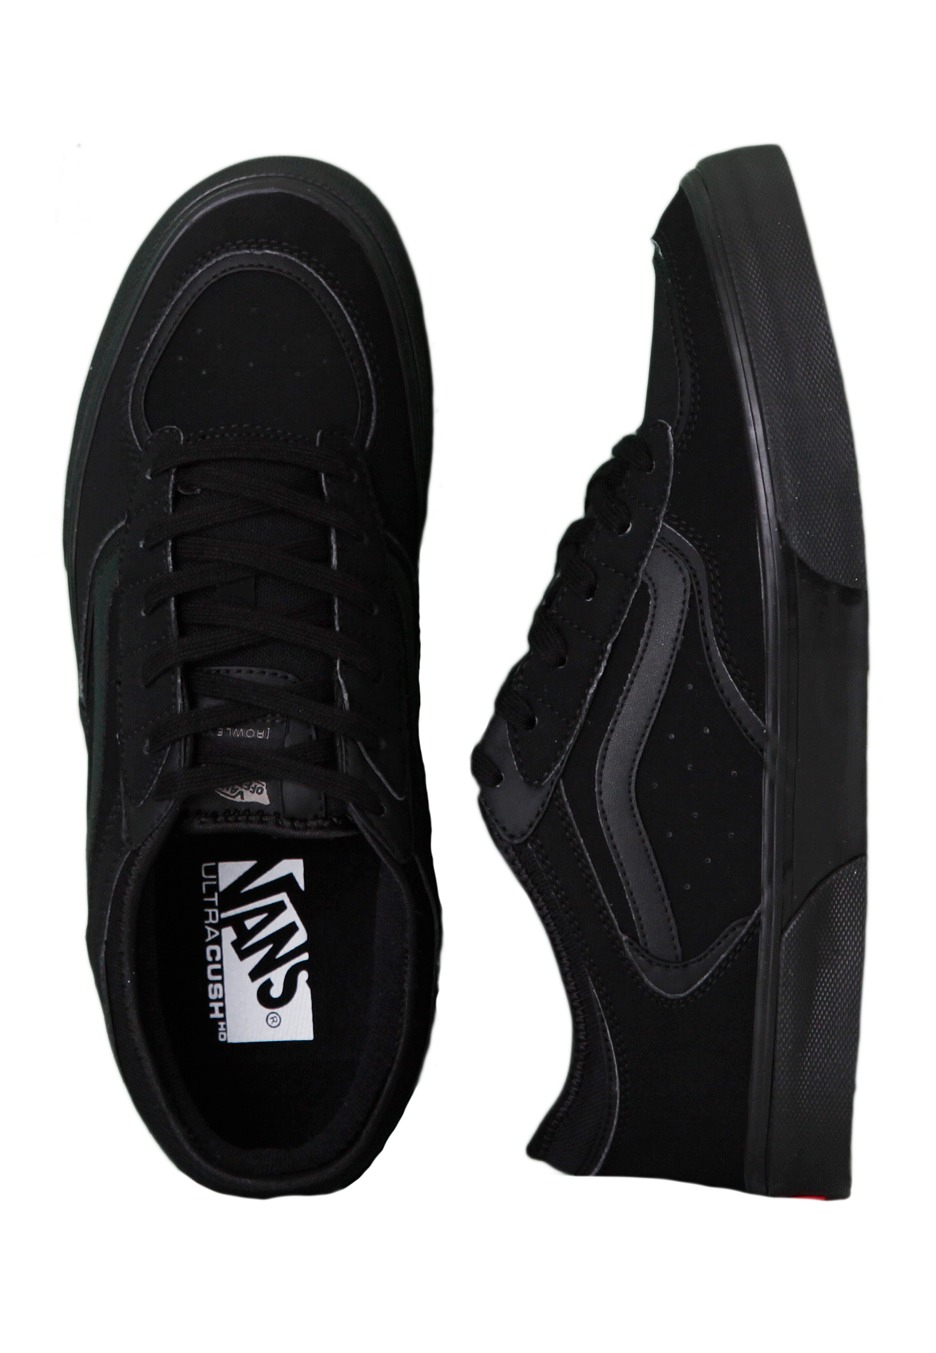 01c5aeb7aa3 Vans - Rowley Pro Black Out - Shoes - Impericon.com UK